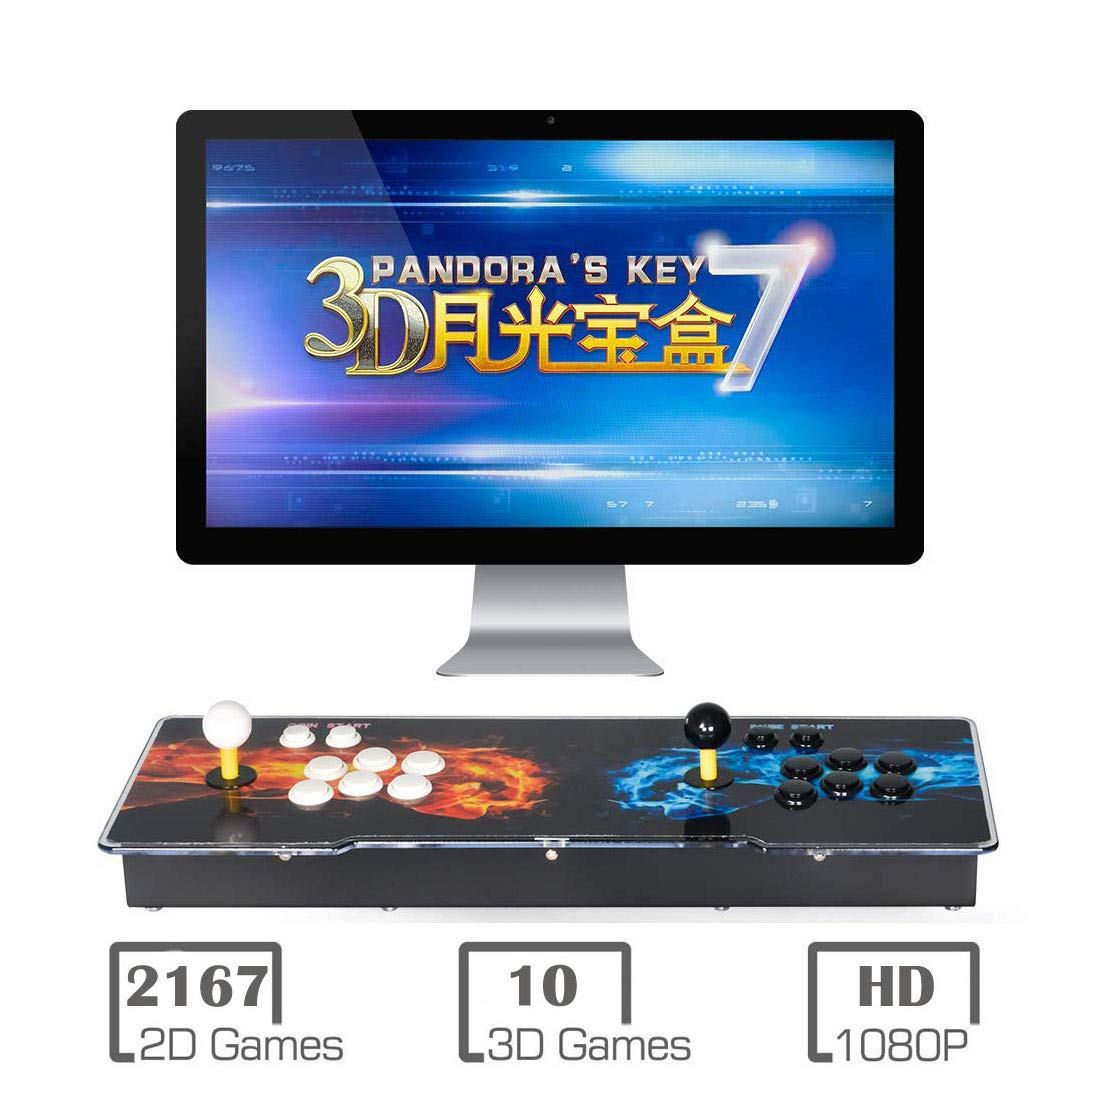 3D Pandora Key 7 Arcade Console | 2177 Games Pre-loaded | Support 2D/3D Games | Add More Games | Full HD (1920x1080) Video | Support 4 Players | 2 Player Game Controls | HDMI/VGA/USB/AUX Audio Output by MYMIQEY (Image #1)